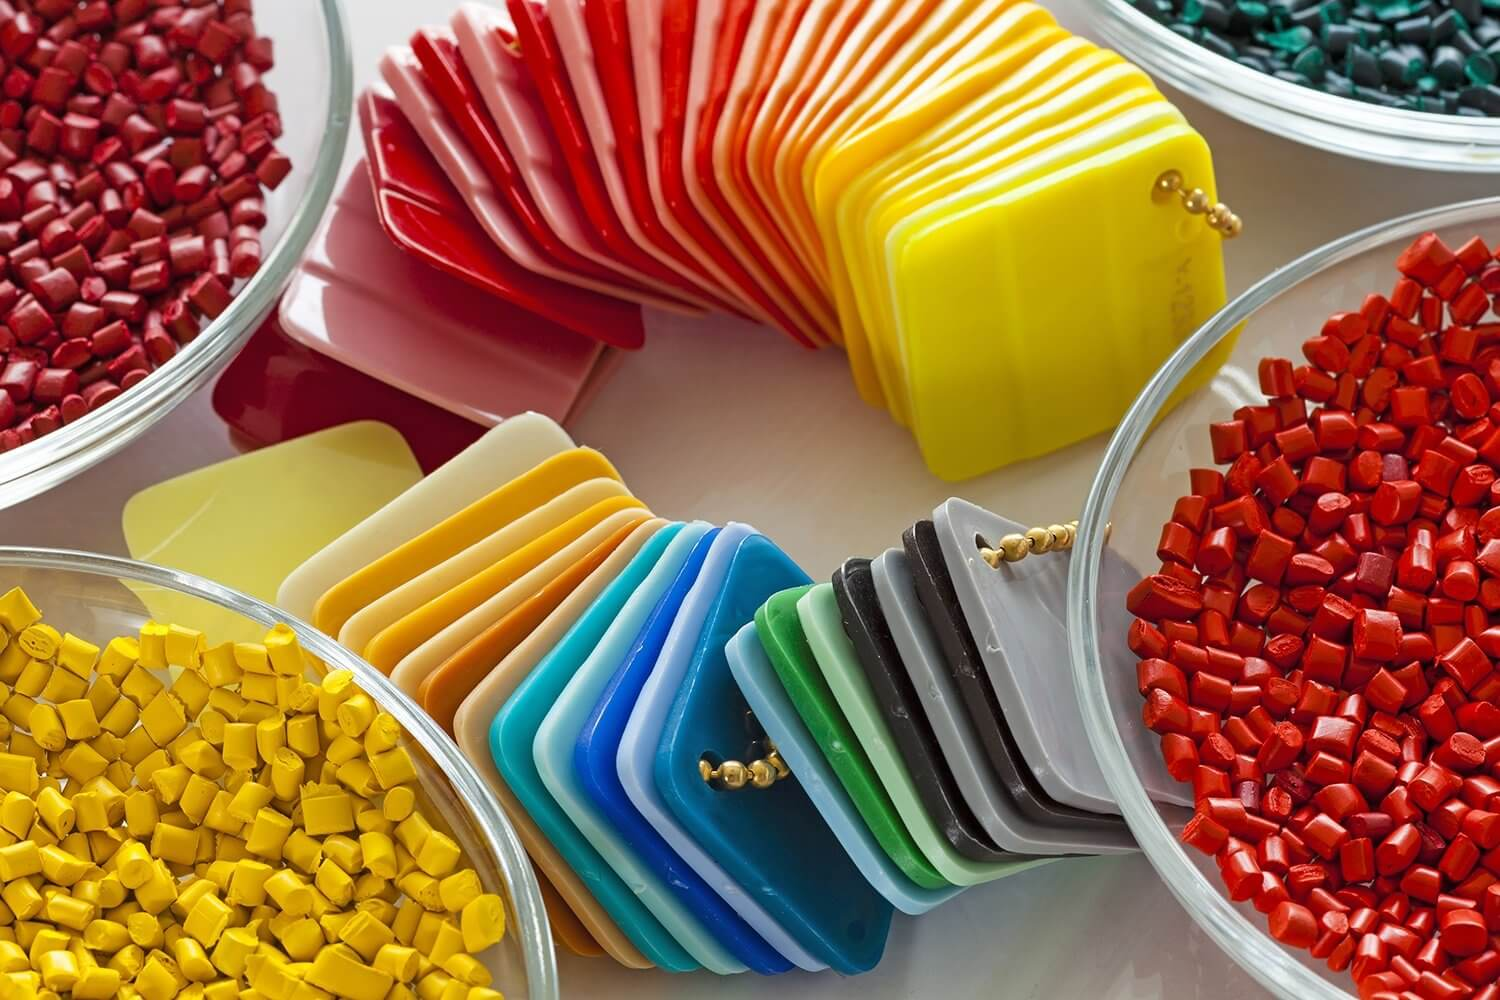 Effects of COVID-19 on the Global Polypropylene Market